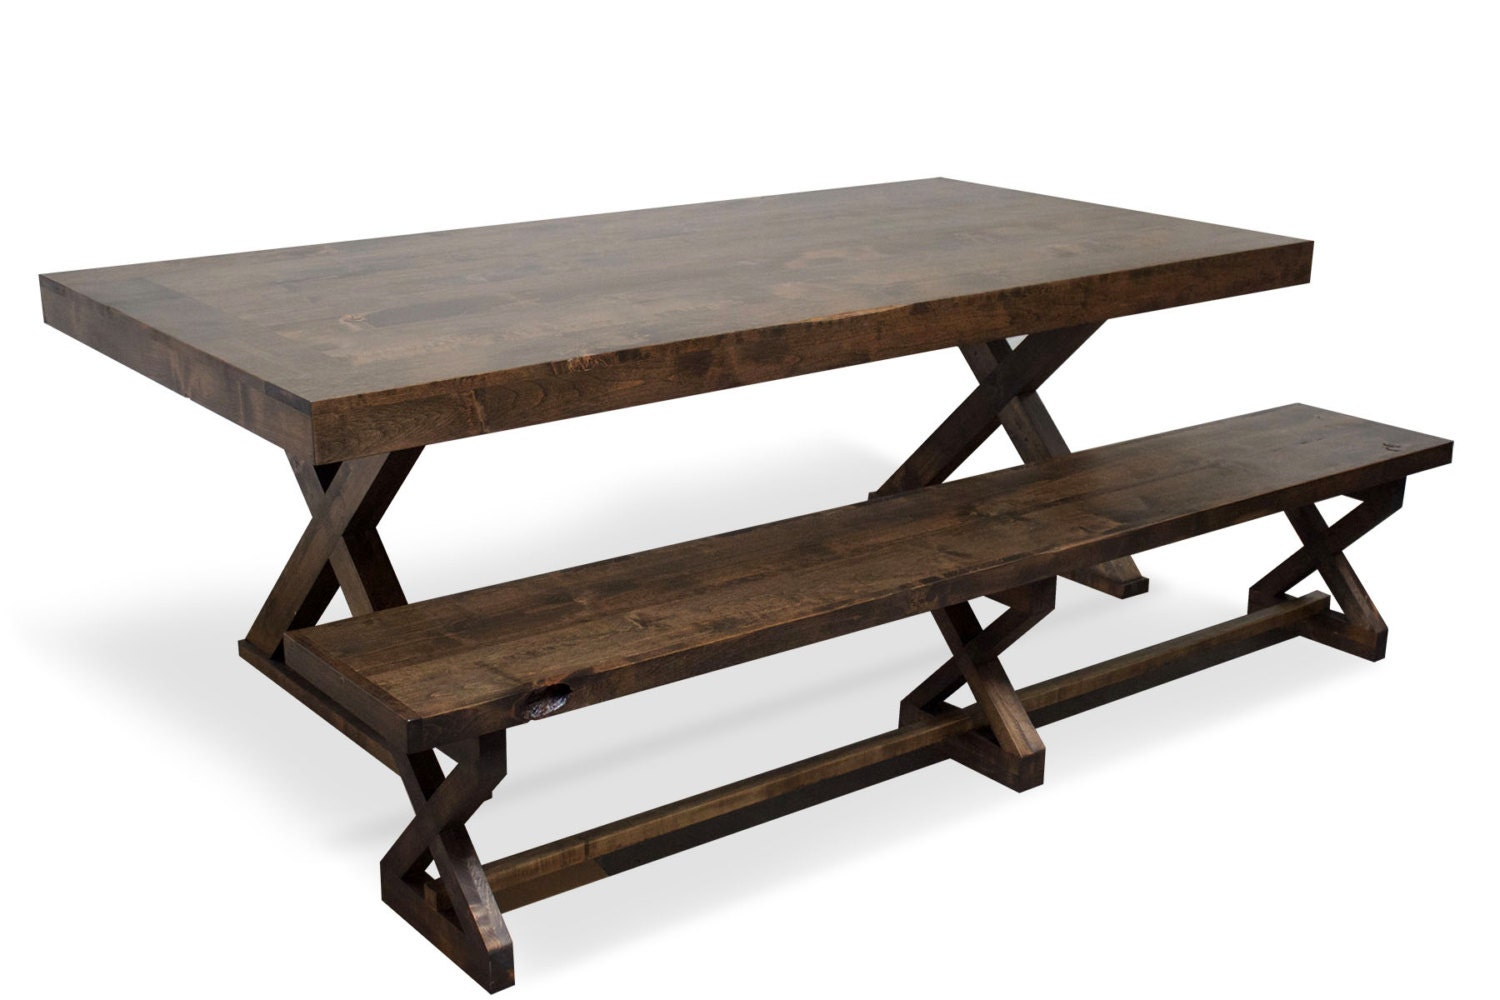 Dining table kitchen table reclaimed wood style table - Kitchen table reclaimed wood ...